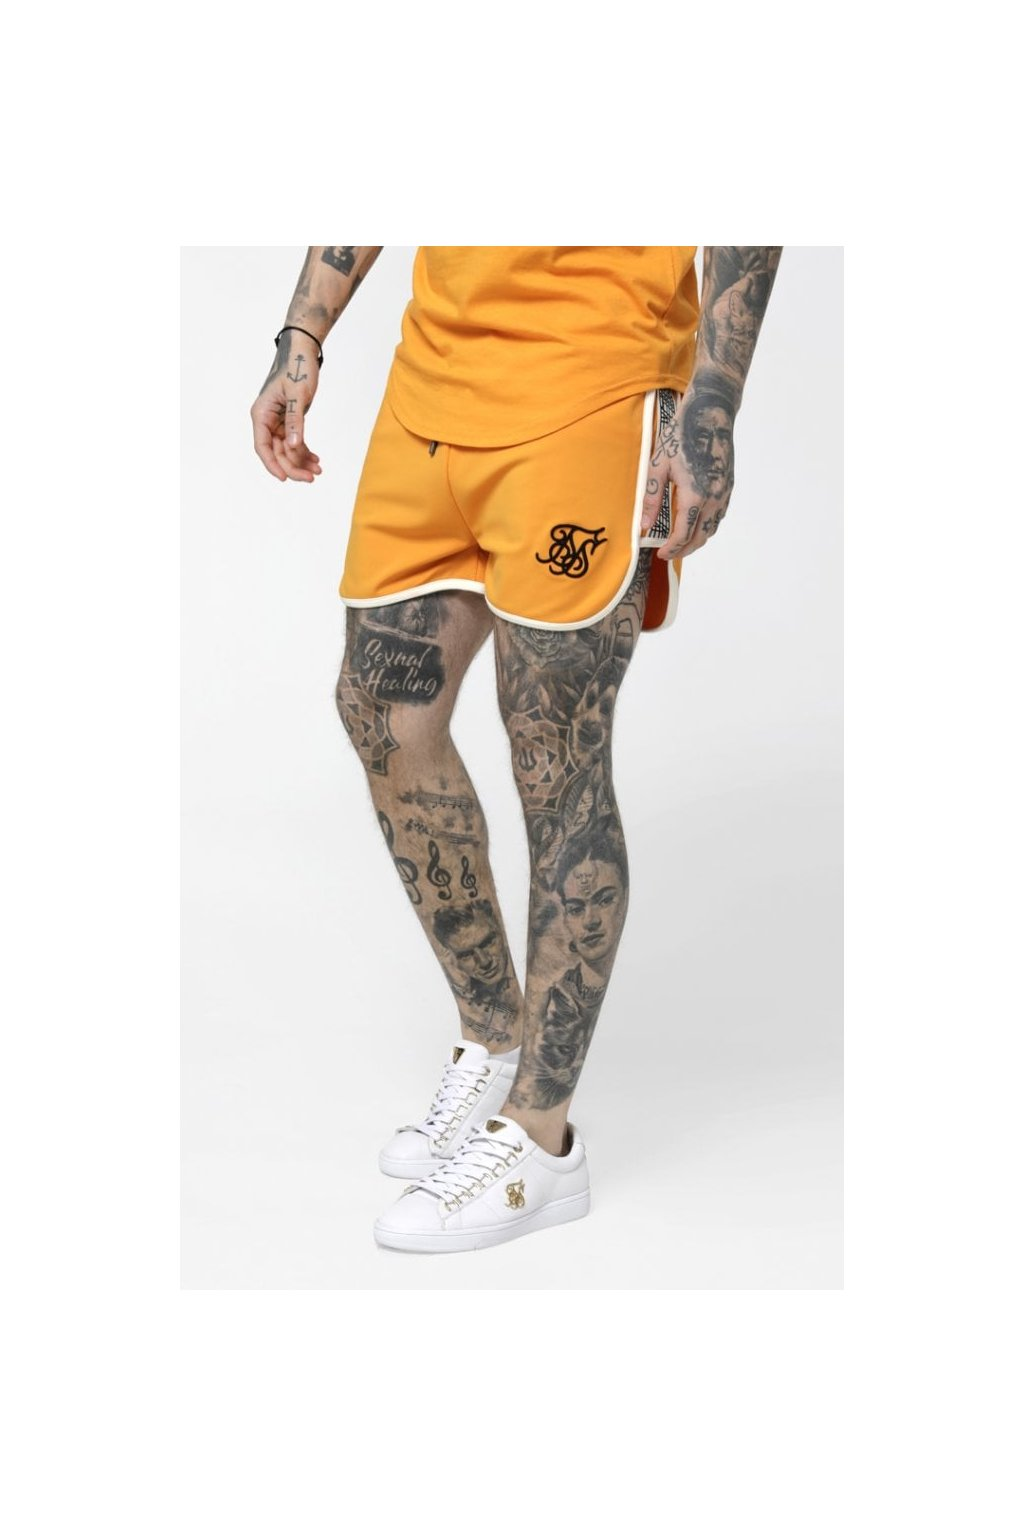 siksilk runner panel shorts yellow p3575 30994 medium